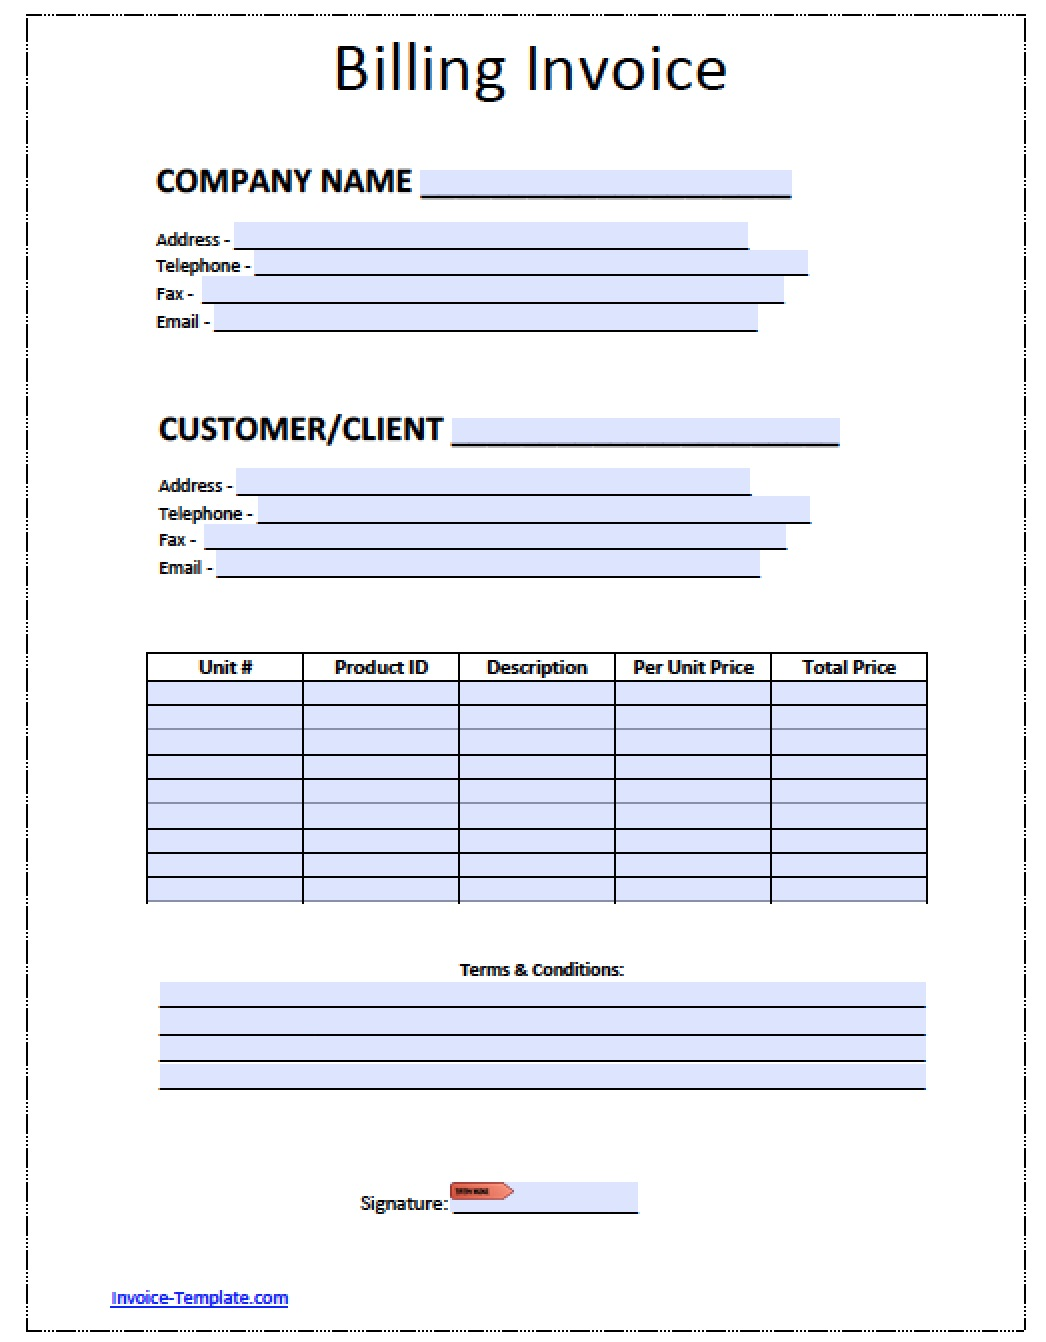 Pigbrotherus  Personable Billing Invoice Invoices Faq U Cloudflare Support Billing  With Foxy Free Billing Invoice Template  Excel  Pdf  Word Doc  Billing With Beautiful Sample Construction Invoice Also Invoice Website In Addition Ncr Invoice Pads And Microsoft Template Invoice As Well As Invoices Samples Additionally Invoice Proforma From Happytomco With Pigbrotherus  Foxy Billing Invoice Invoices Faq U Cloudflare Support Billing  With Beautiful Free Billing Invoice Template  Excel  Pdf  Word Doc  Billing And Personable Sample Construction Invoice Also Invoice Website In Addition Ncr Invoice Pads From Happytomco